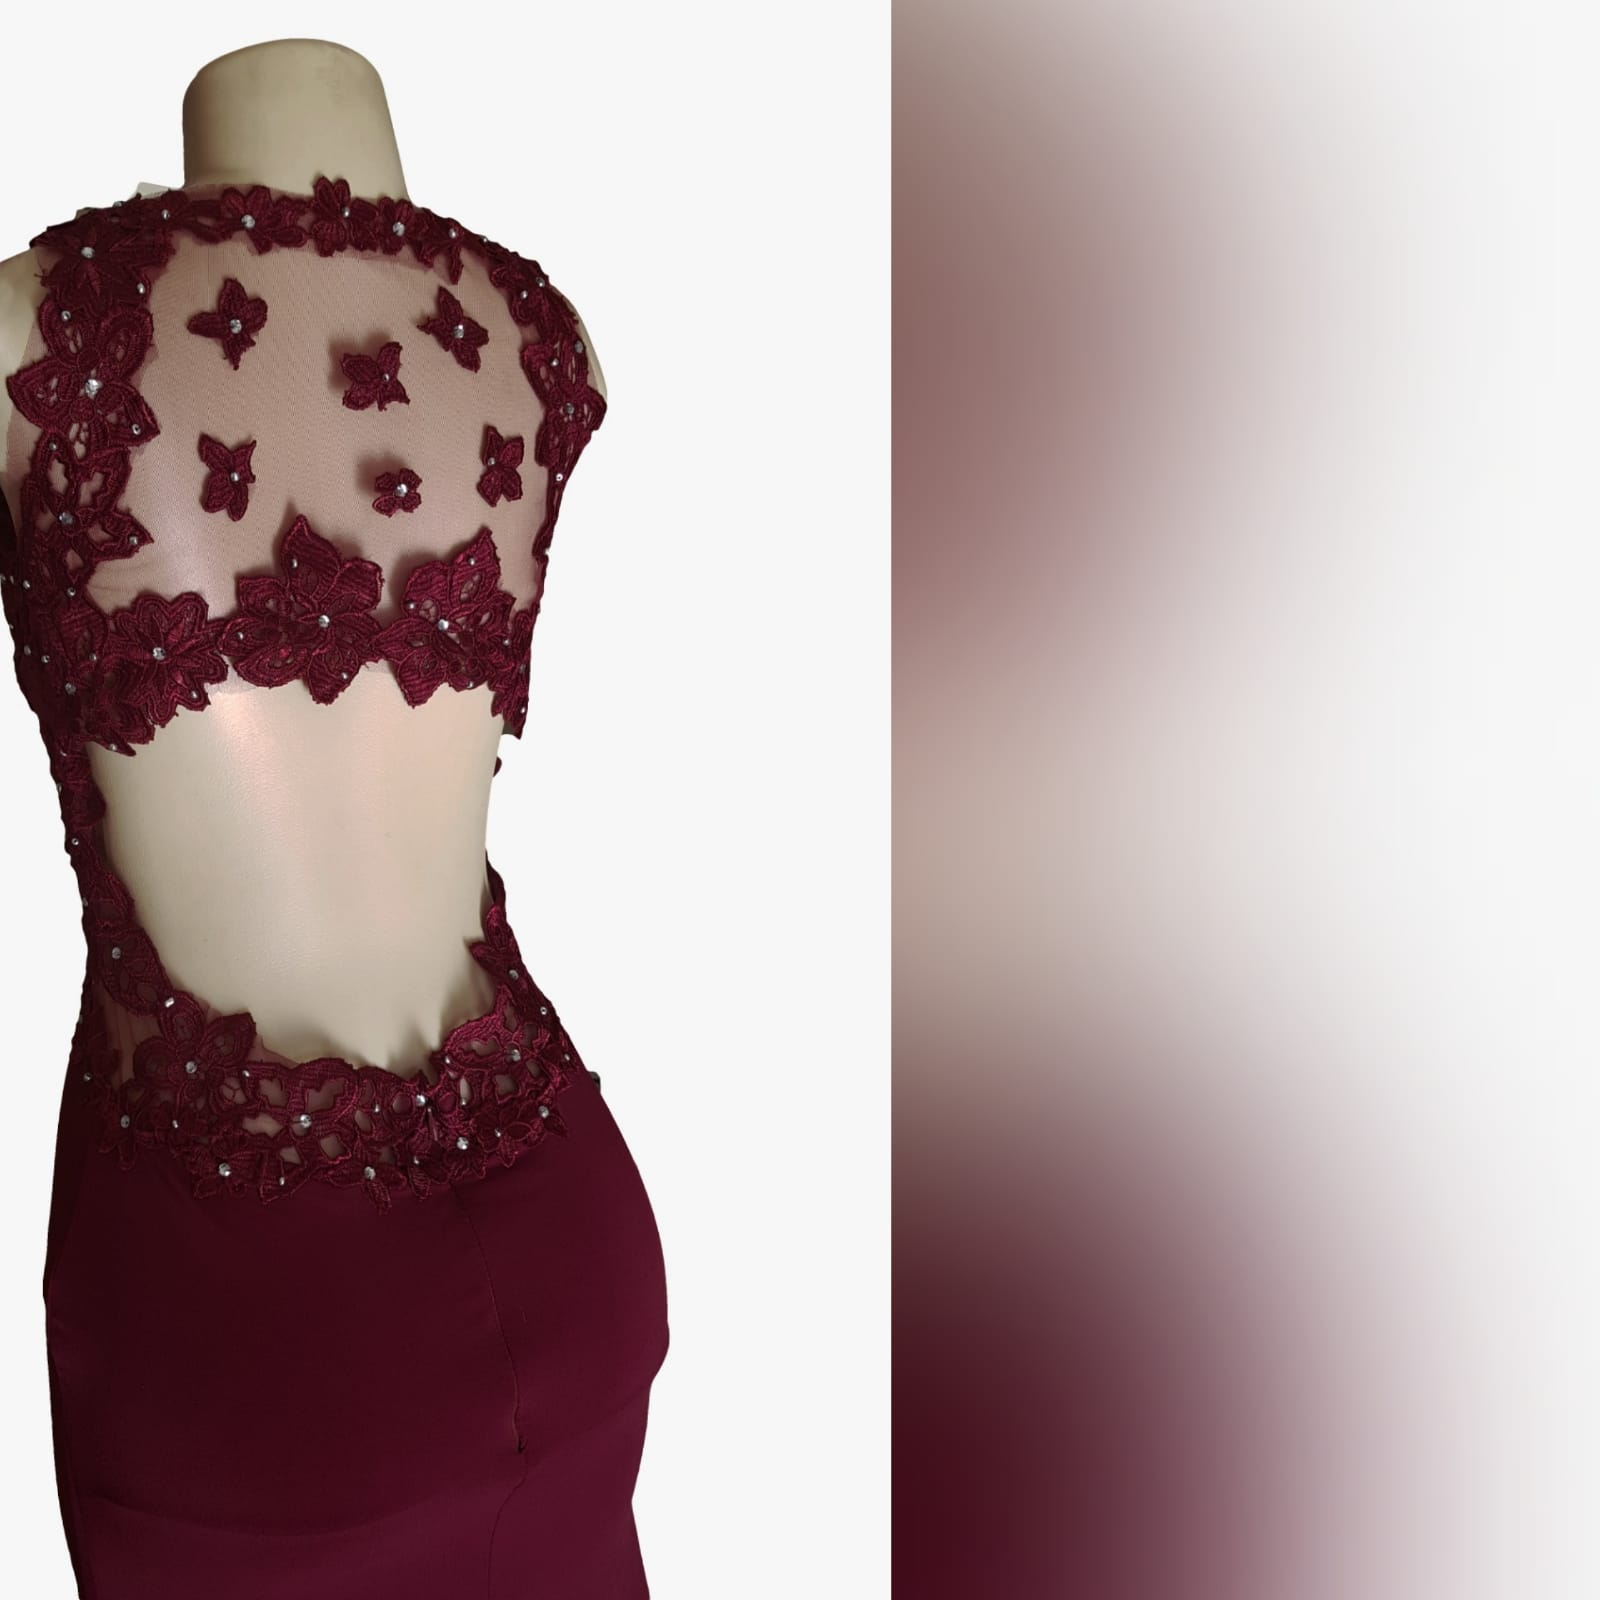 Burgundy long sexy matric farewell dress 10 burgundy long sexy matric farewell dress with an illusion lace low back and side tummy. Sweetheart neckline detailed with lace. With a slit and a train.